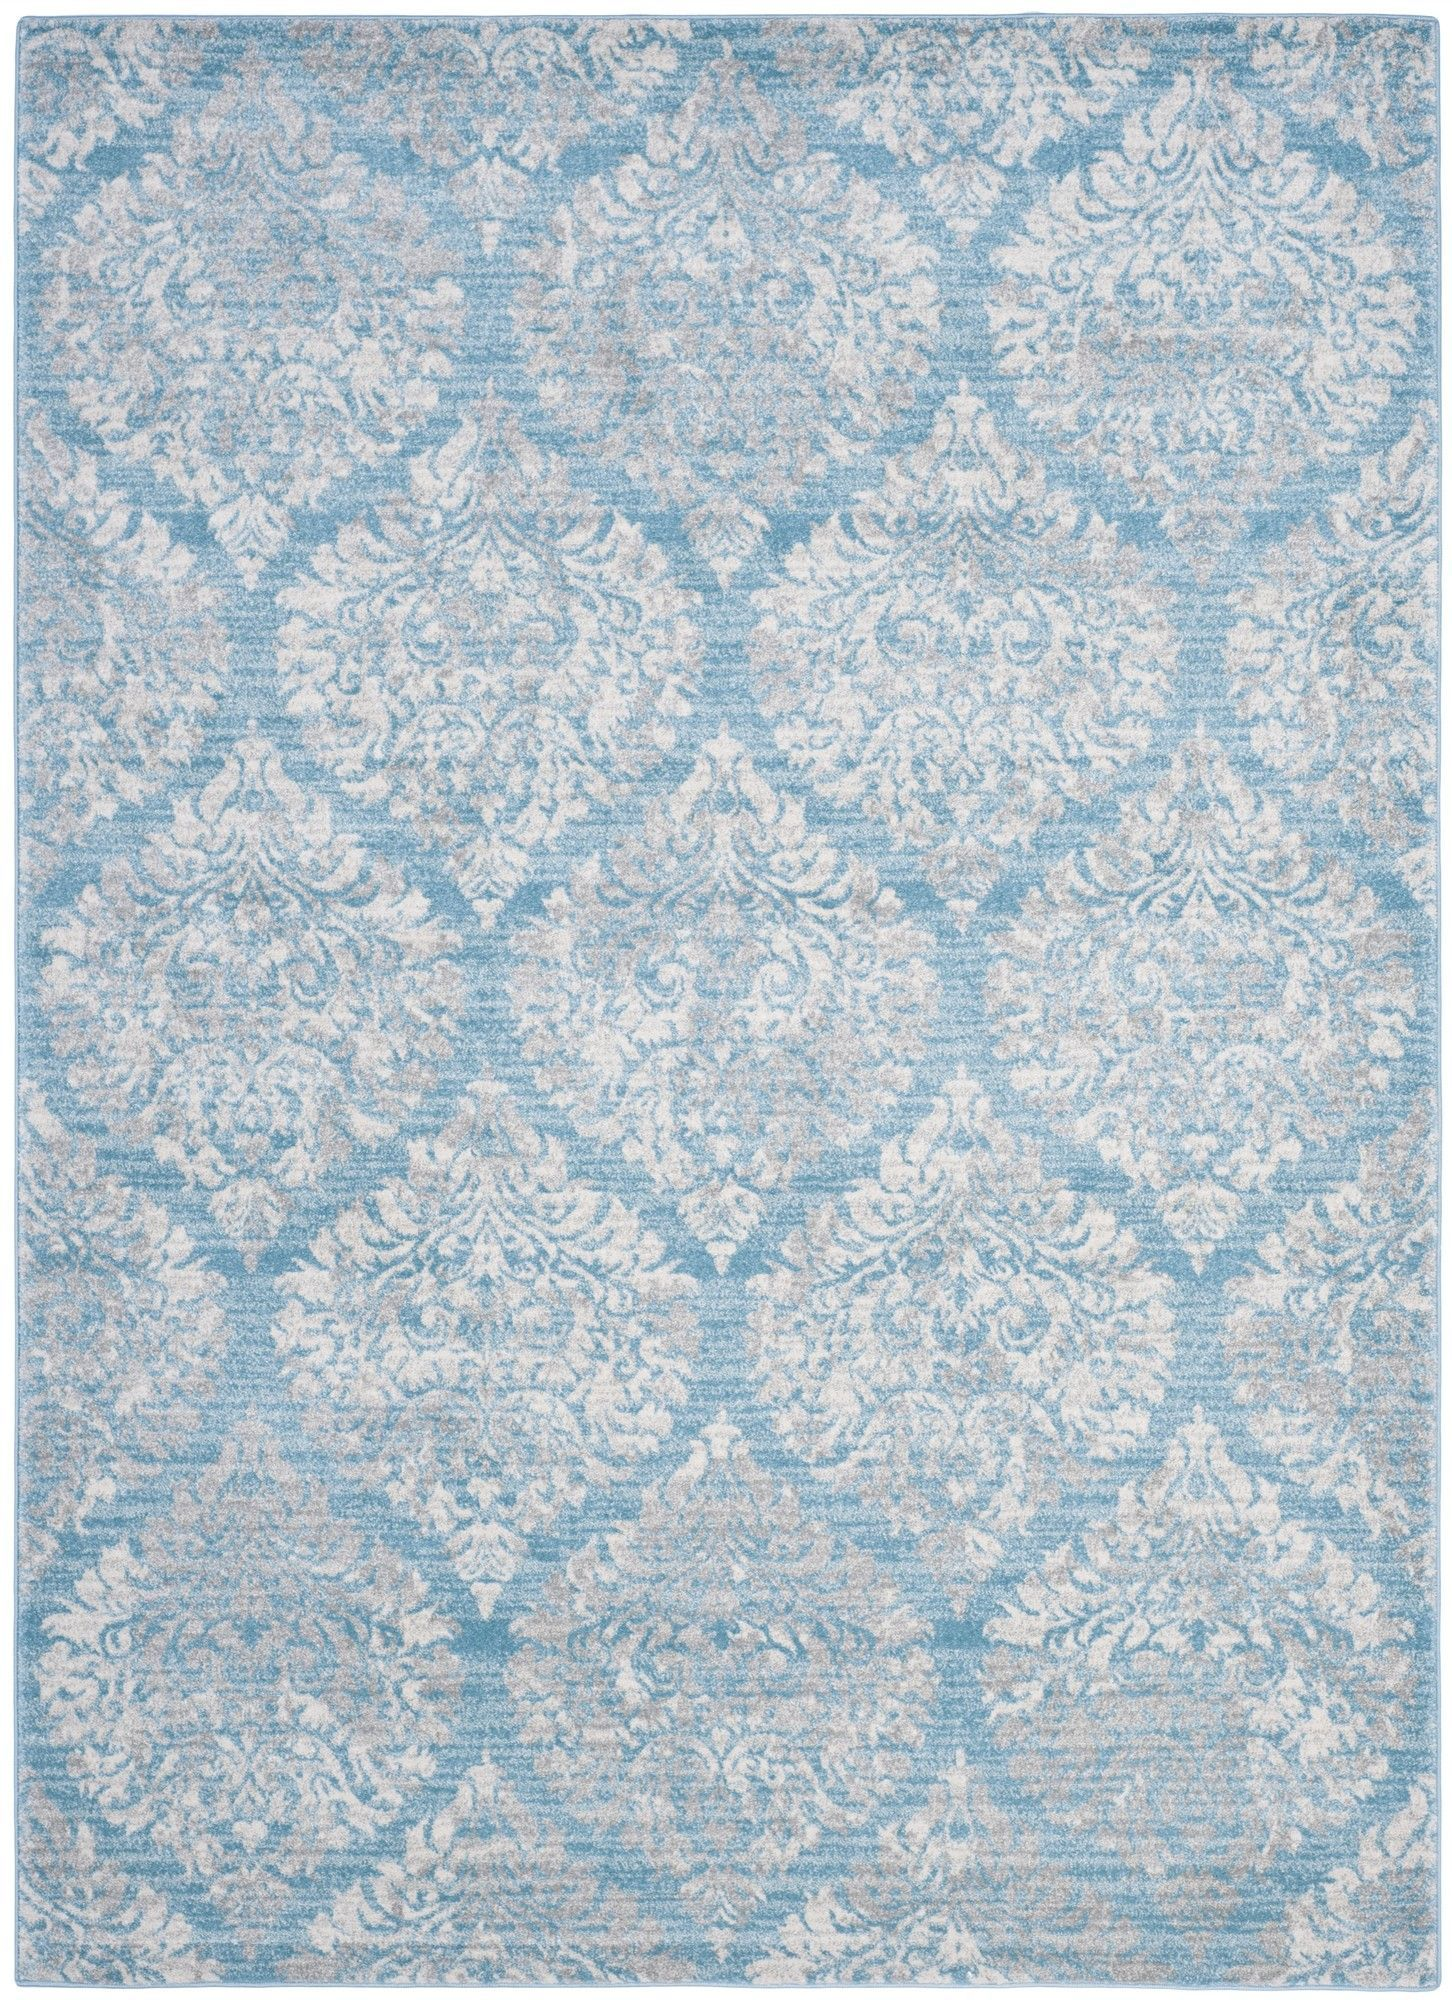 Herne Bay Light Blue/Ivory Area Rug